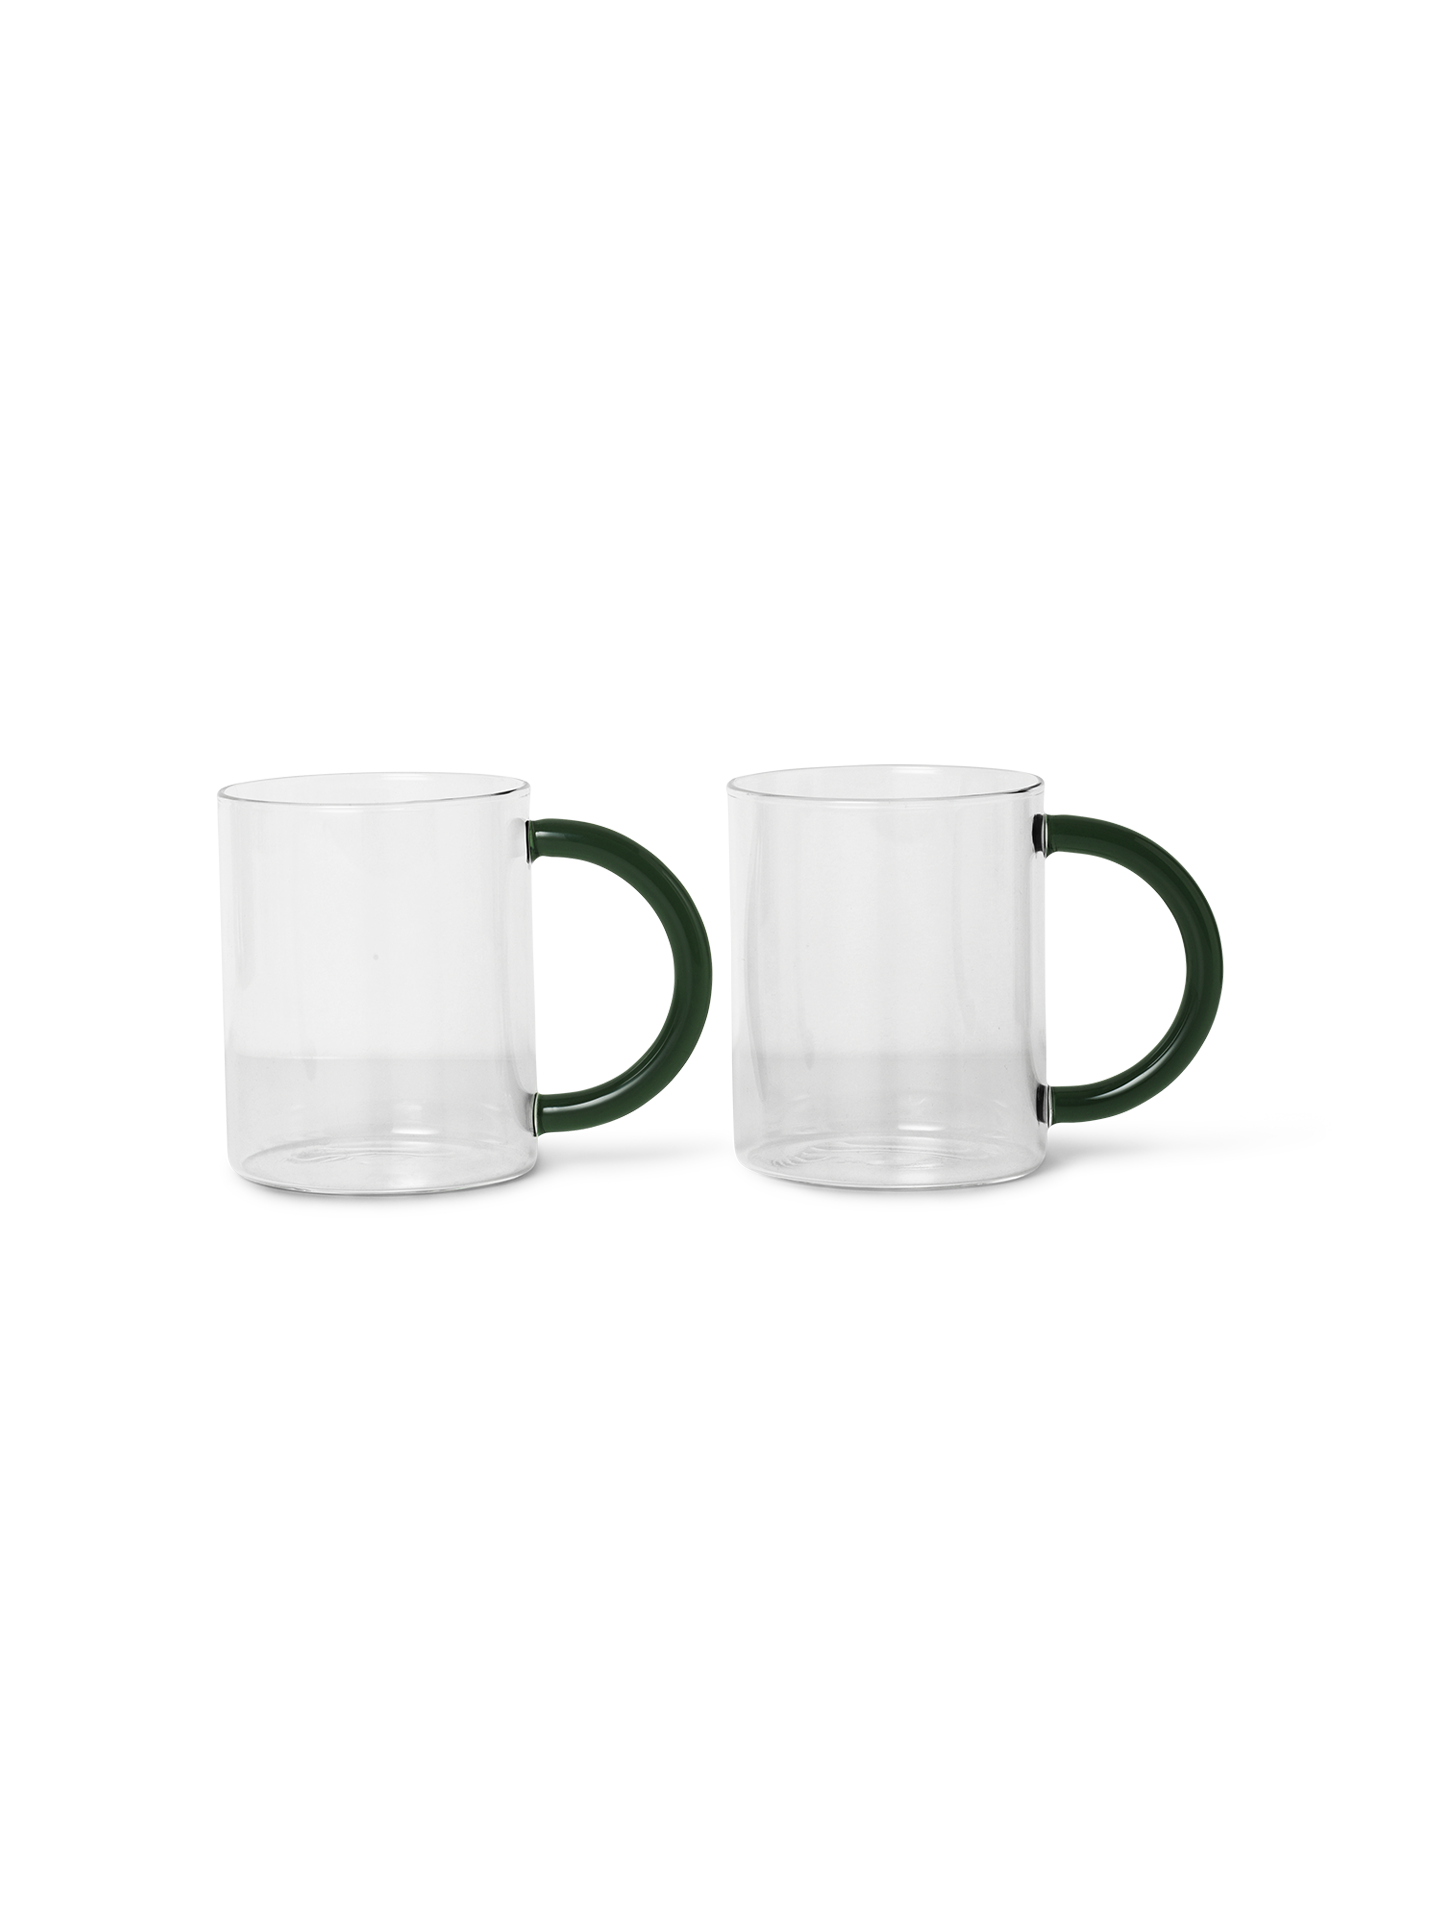 "Glastassen ""still mugs"""